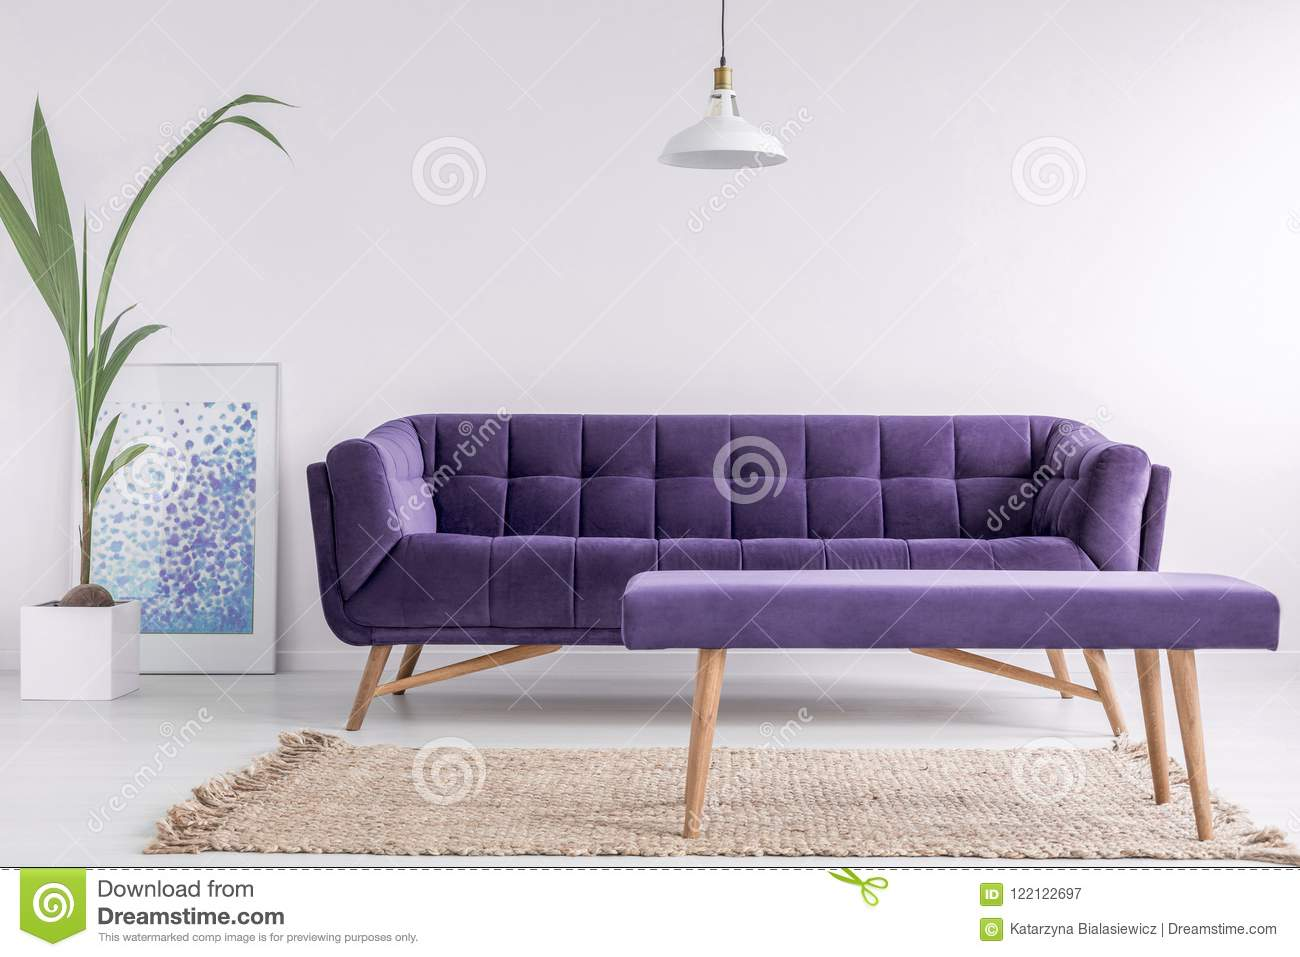 Bright living room interior with fresh plant, poster and carpet on the floor and purple couch and bench in real photo with empty w